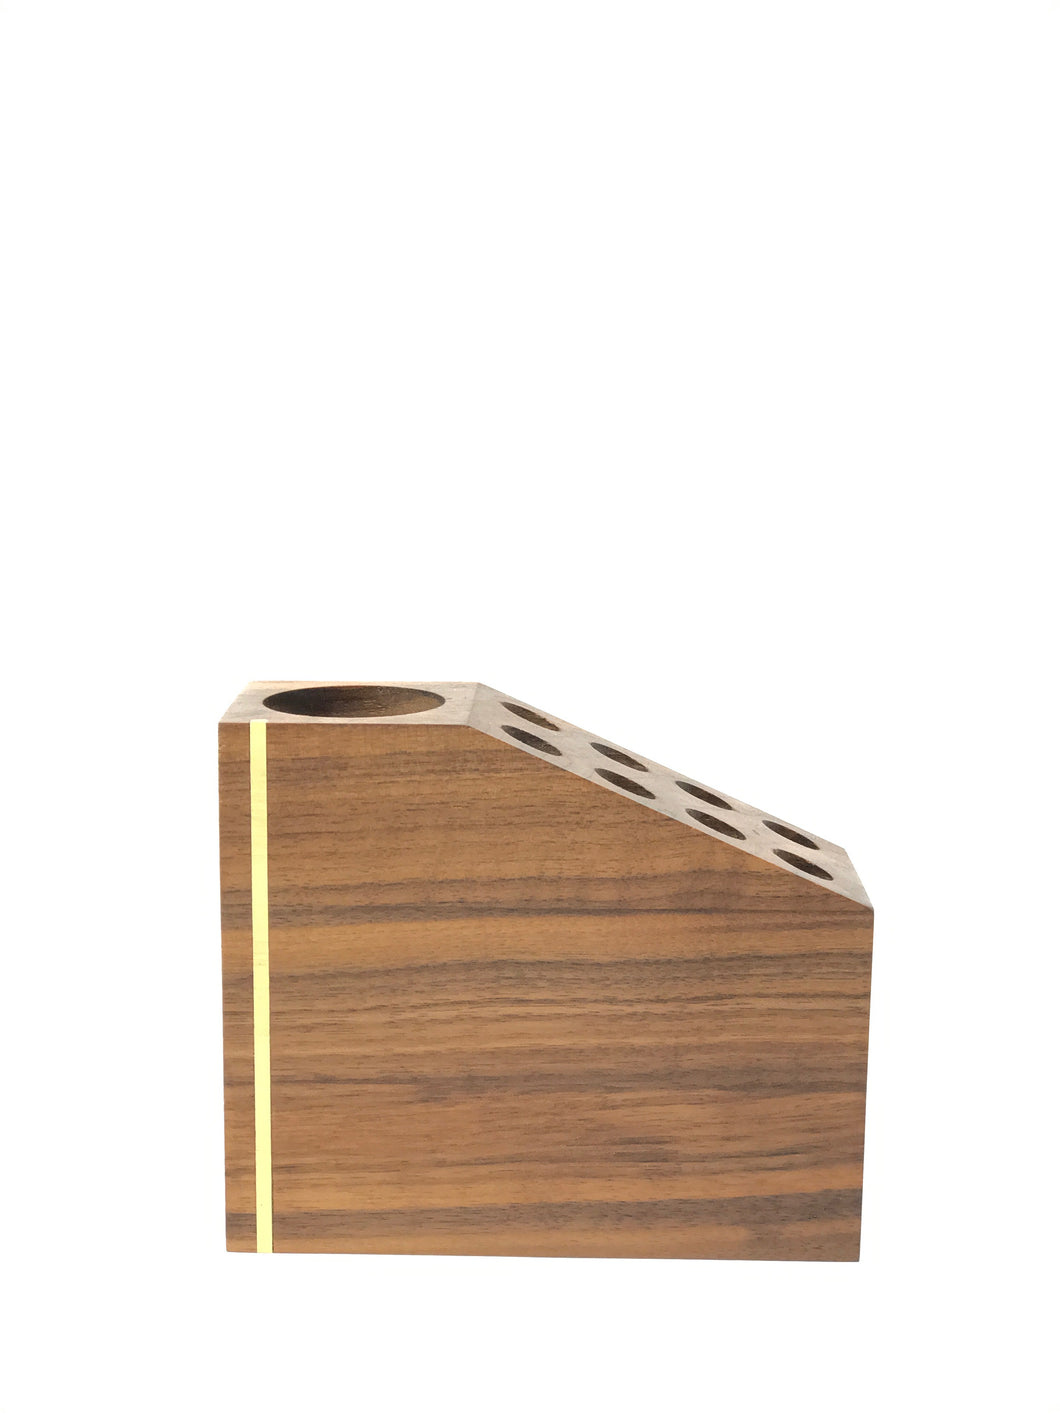 Hardwood Geometric Pencil Holder & Office Organizer